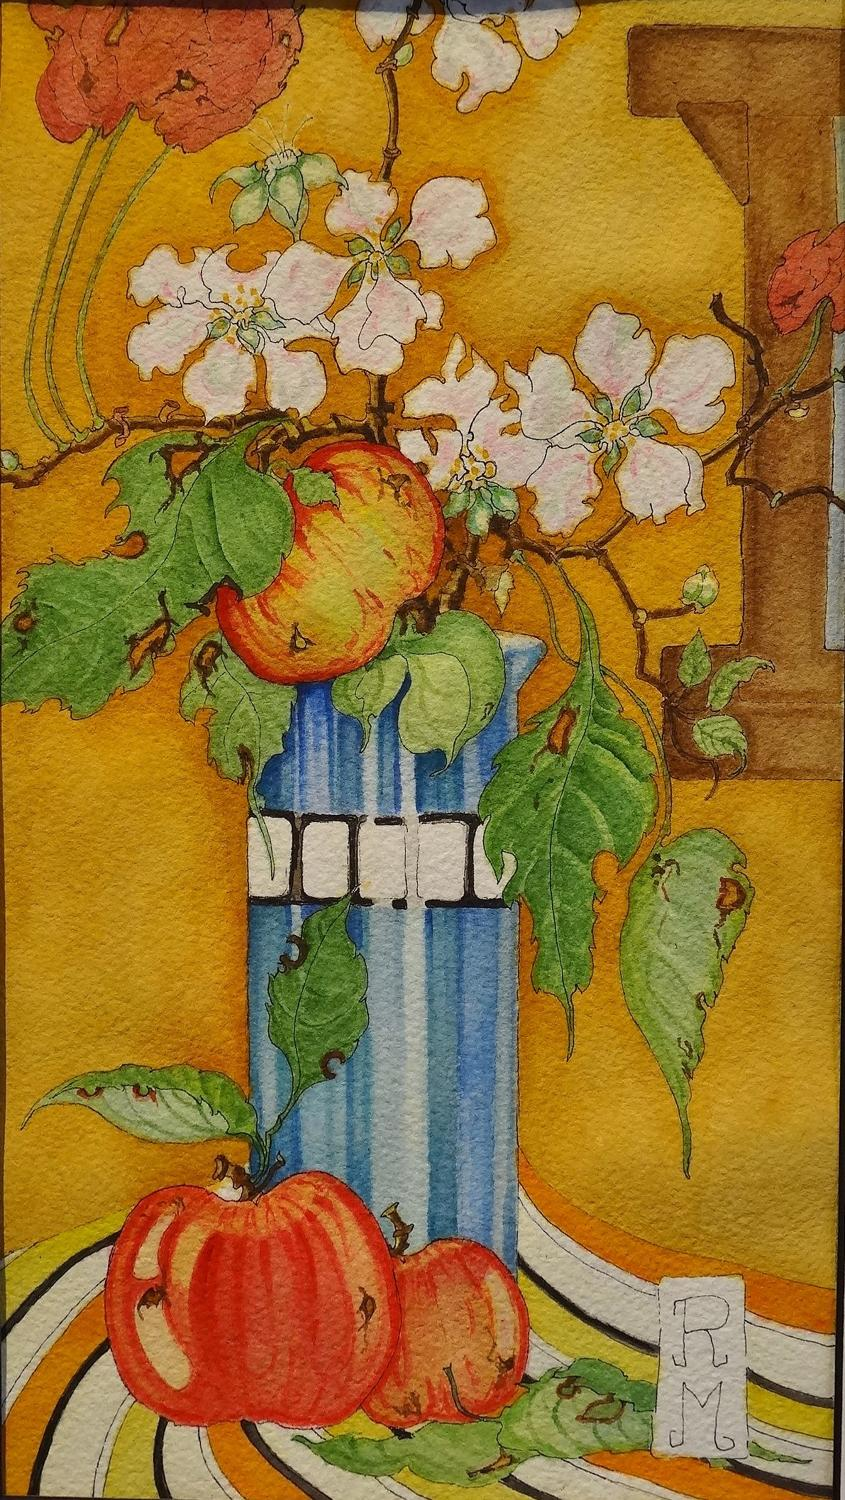 Rosemary Marshall watercolour - Apples & Appleblossom